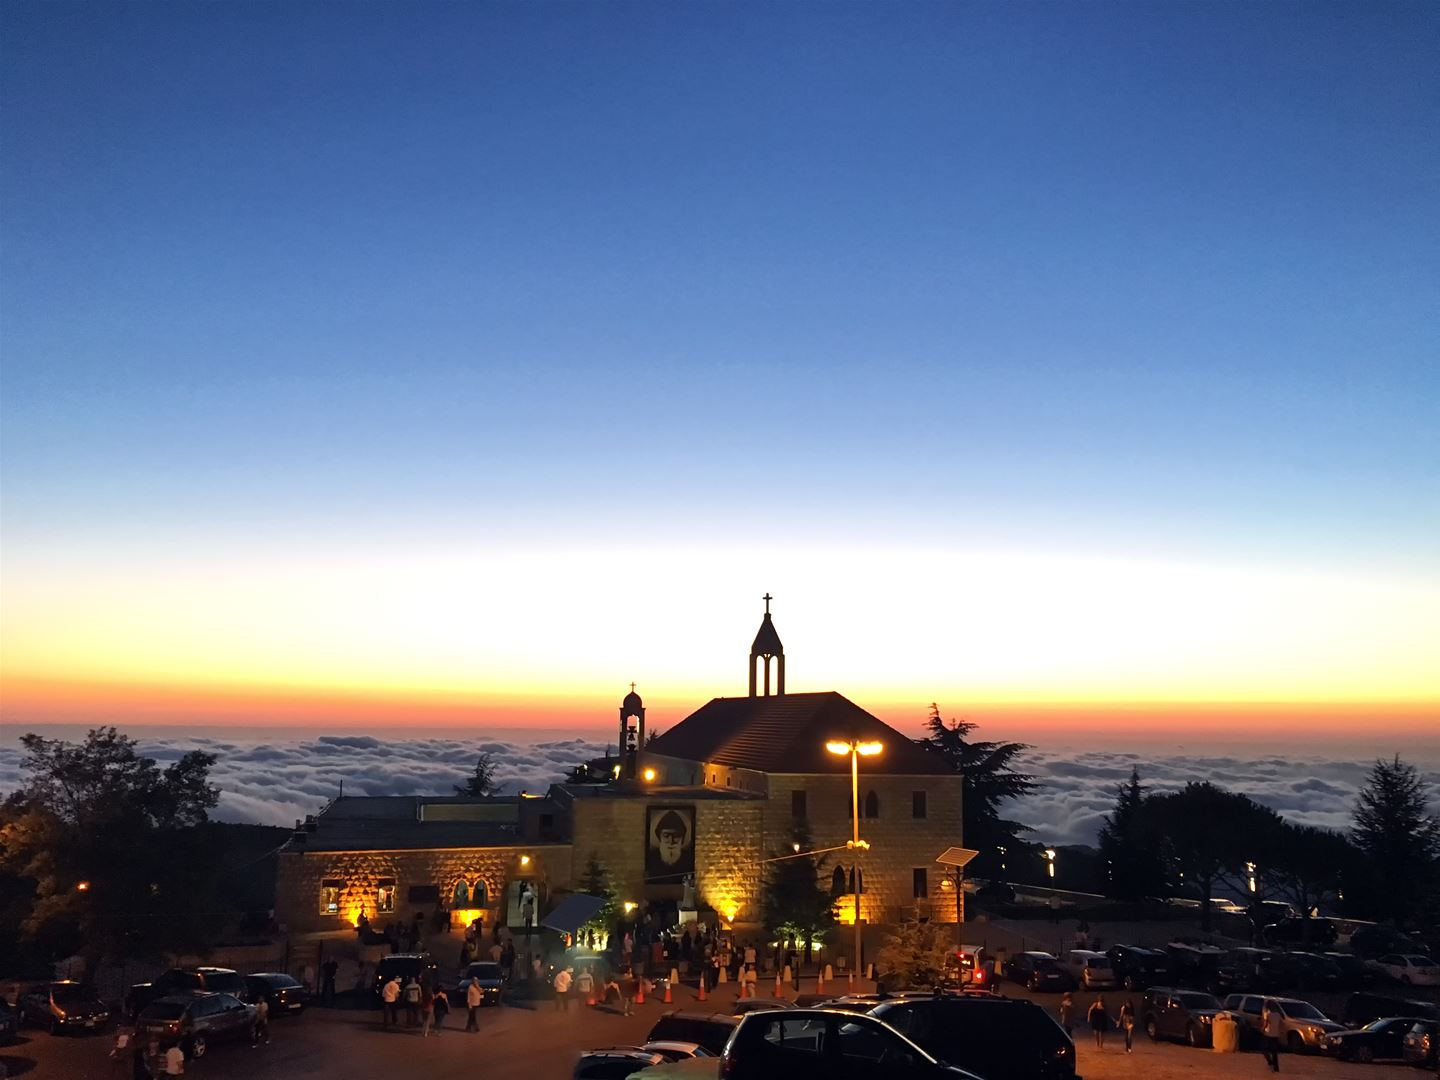 Saint Charbel Annaya Above the Clouds at Sunset